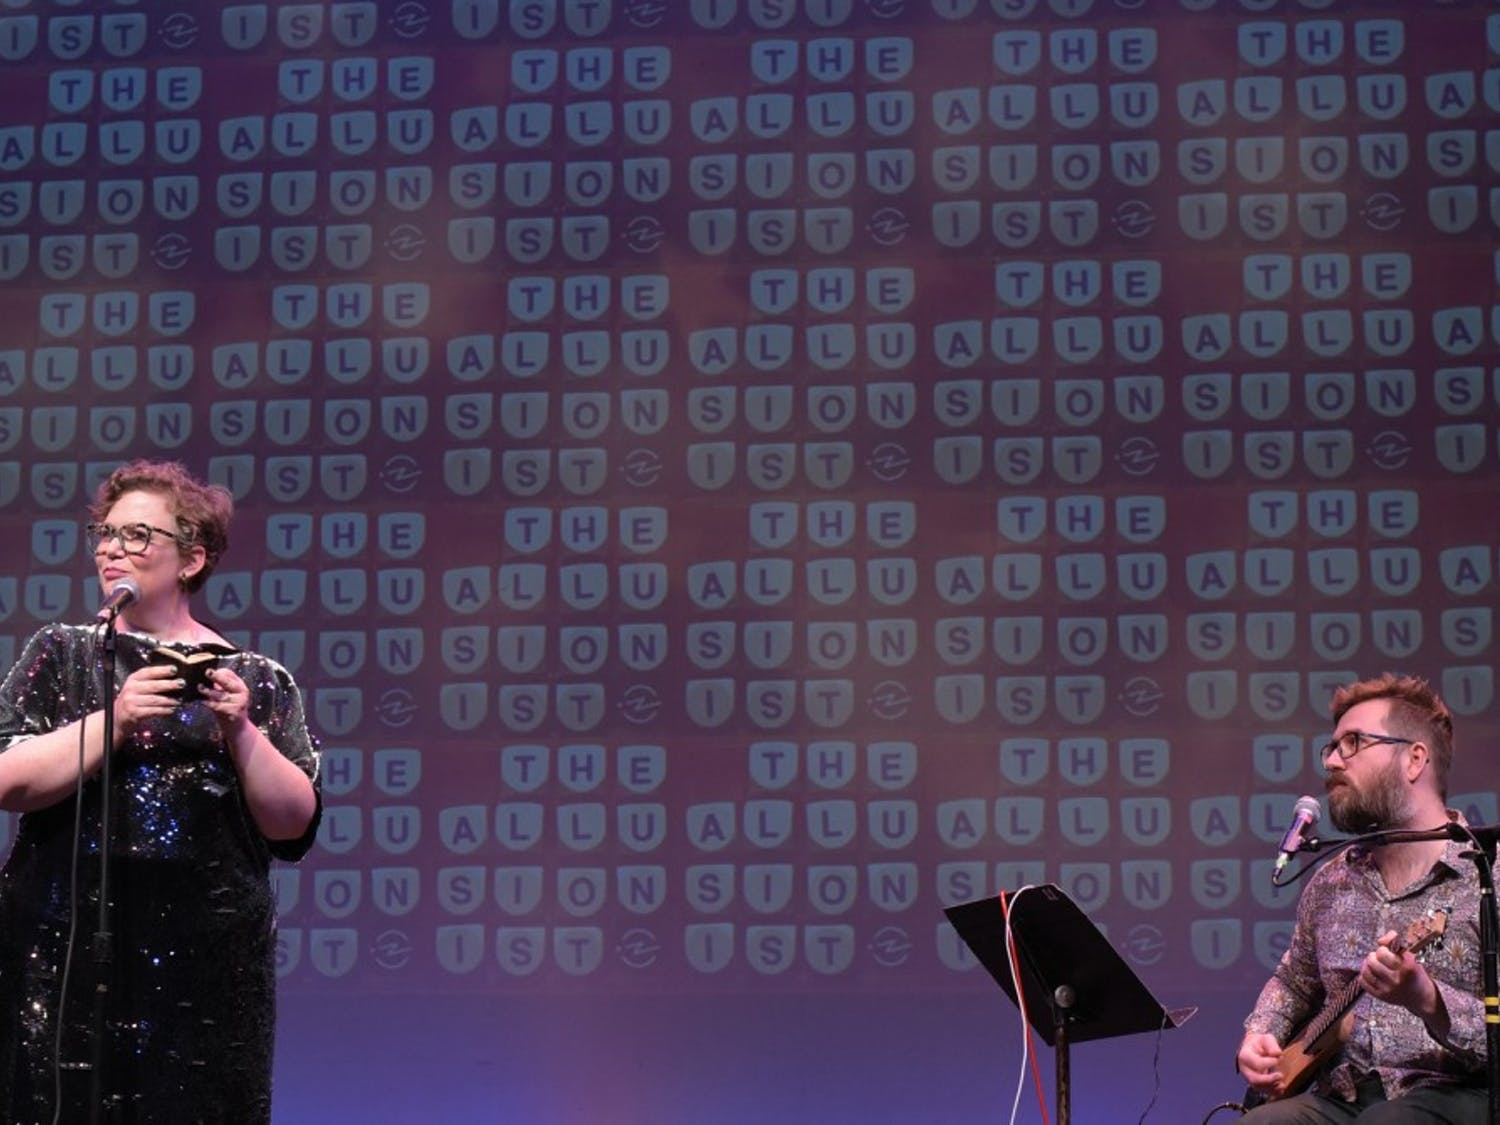 Helen Zaltzman (left) and Martin Austwick (right) performing at SF Sketchfest in January 2019, at the Brava Theatre in San Francisco. Photo courtesy of Baranduin Briggs.